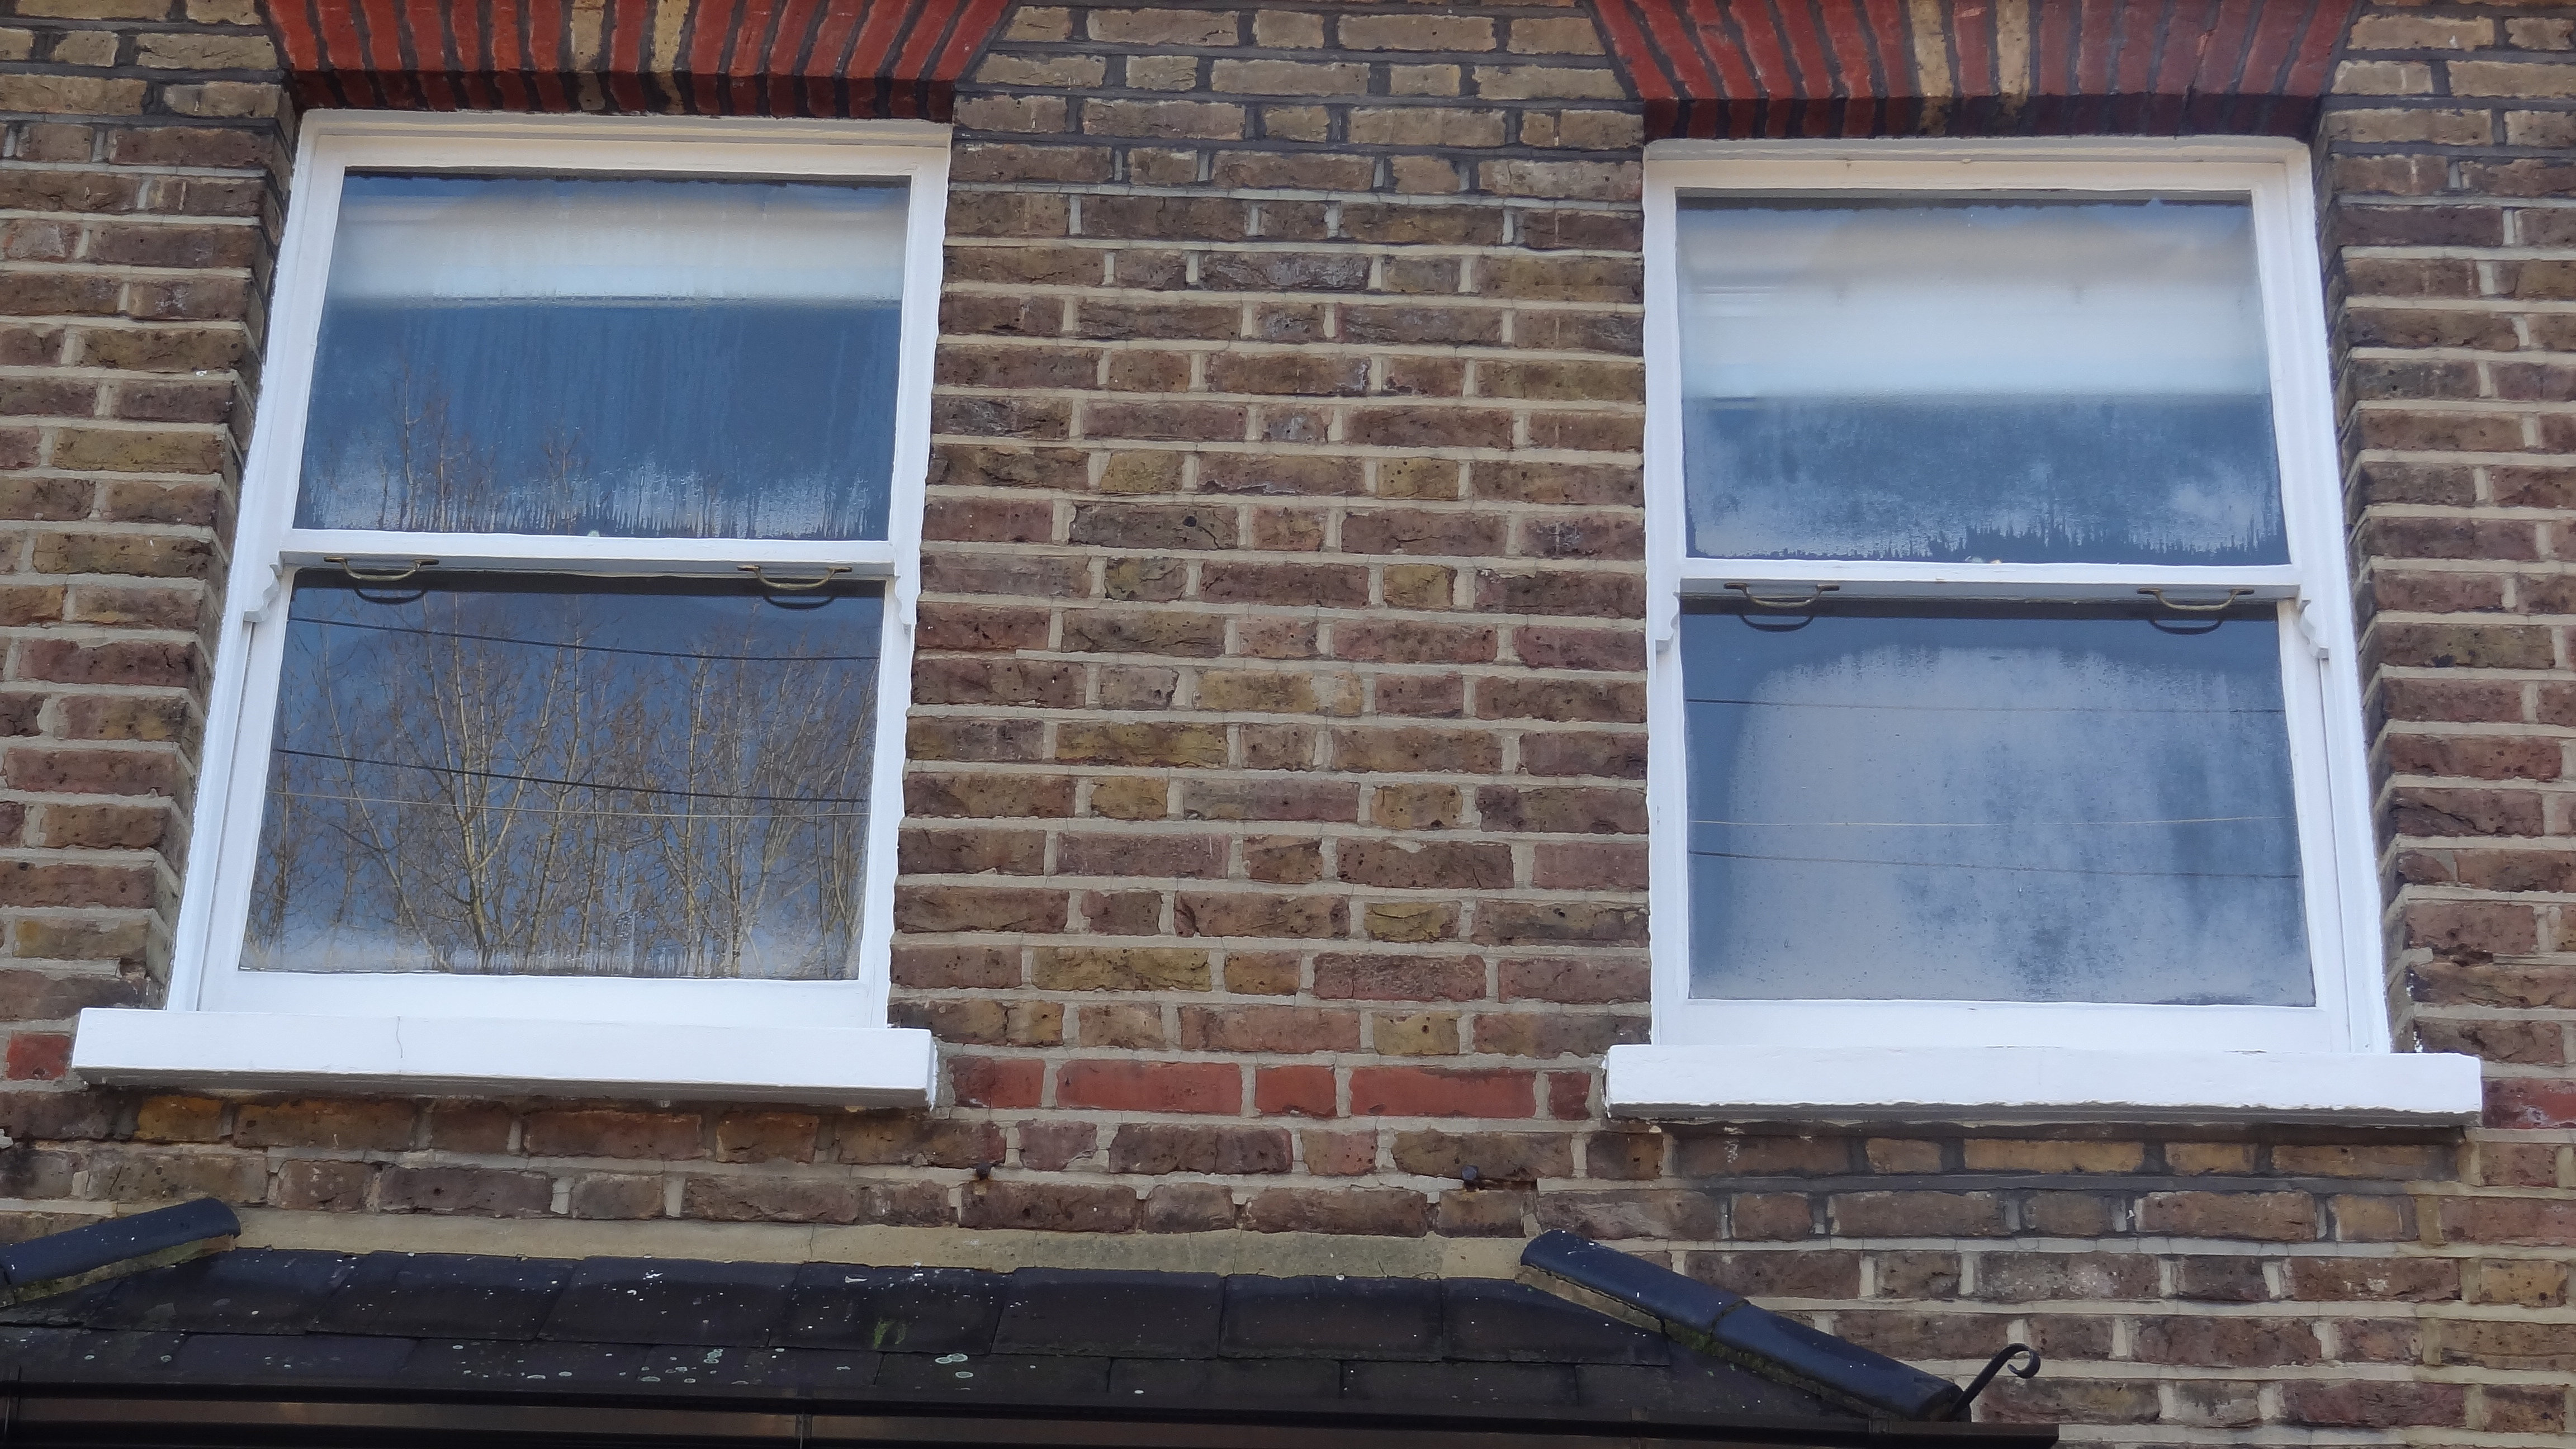 sash window repairs london by mortice green sash window specialists before sash window repairs. Black Bedroom Furniture Sets. Home Design Ideas